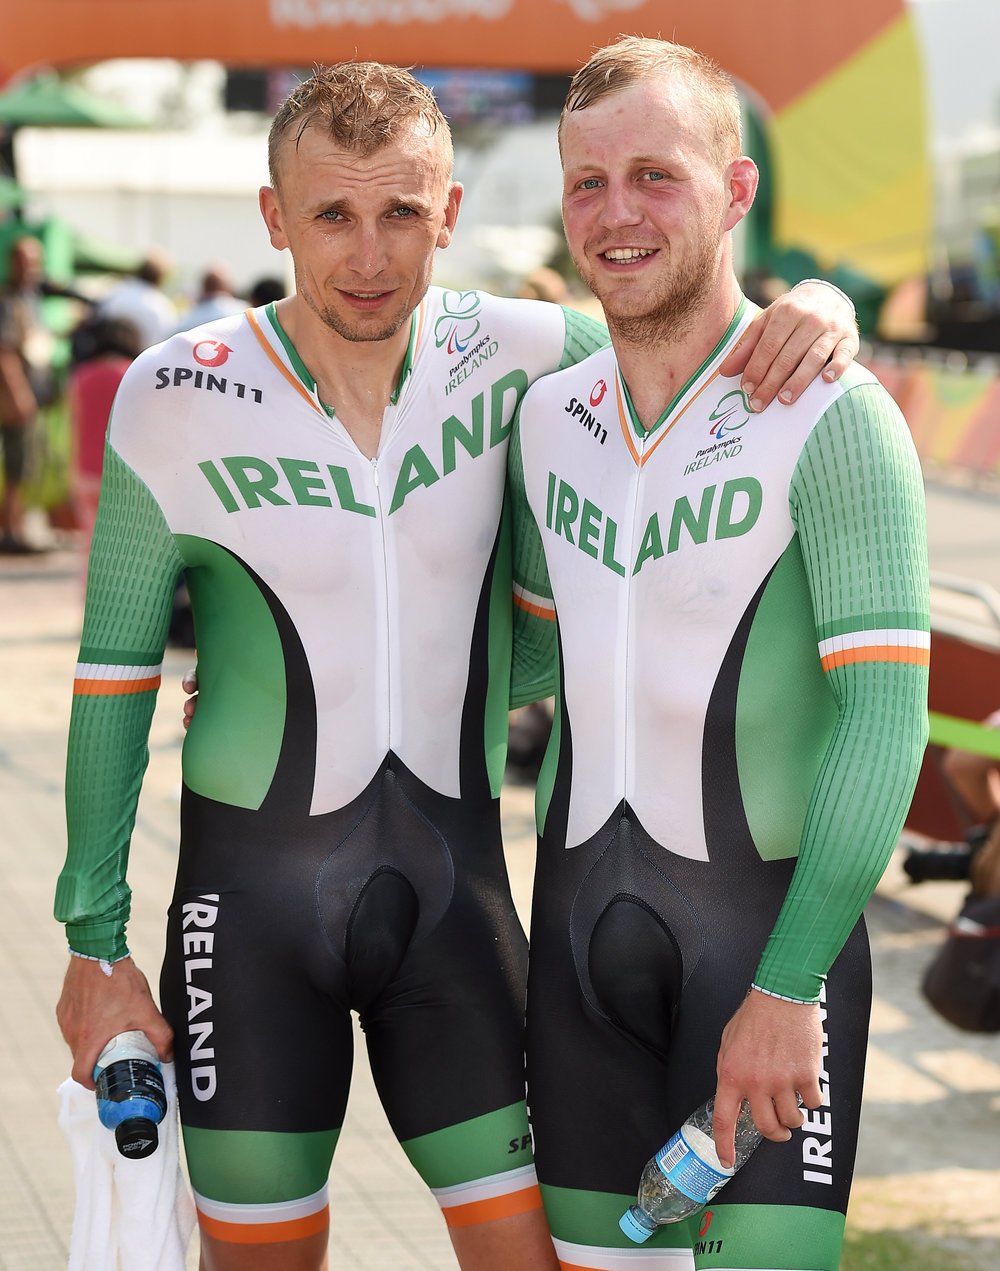 Cycling: Peter Ryan and Marcin Mizgajski in the Mens B Road Time Trial